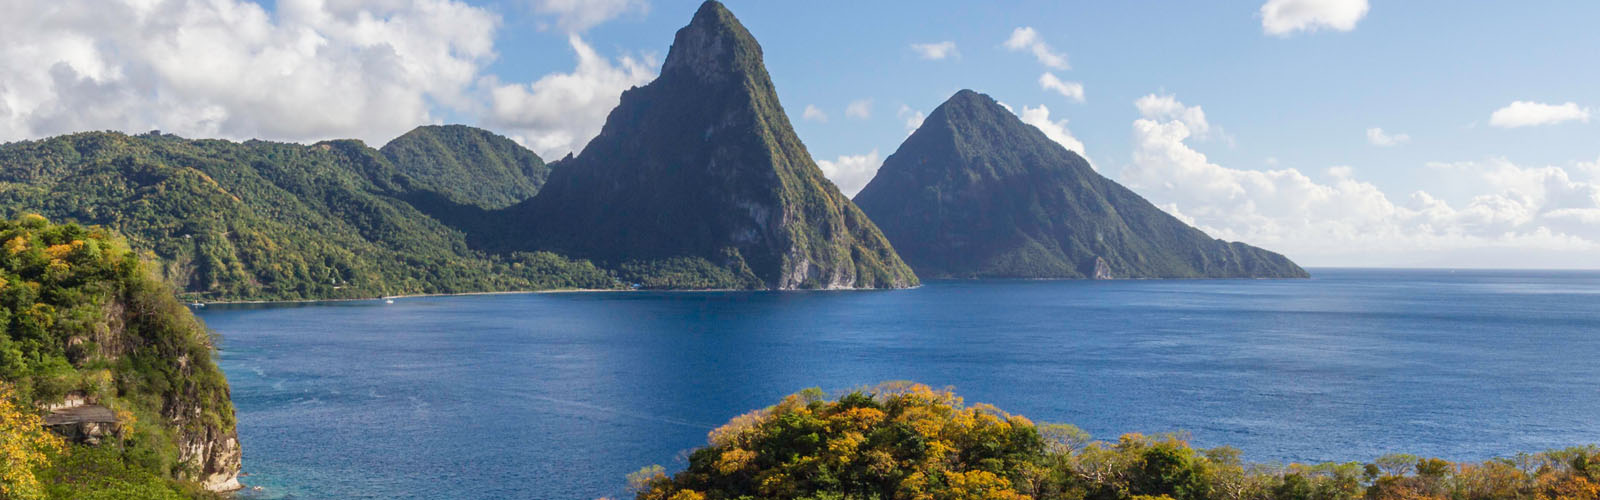 The Pitons in Soufriere